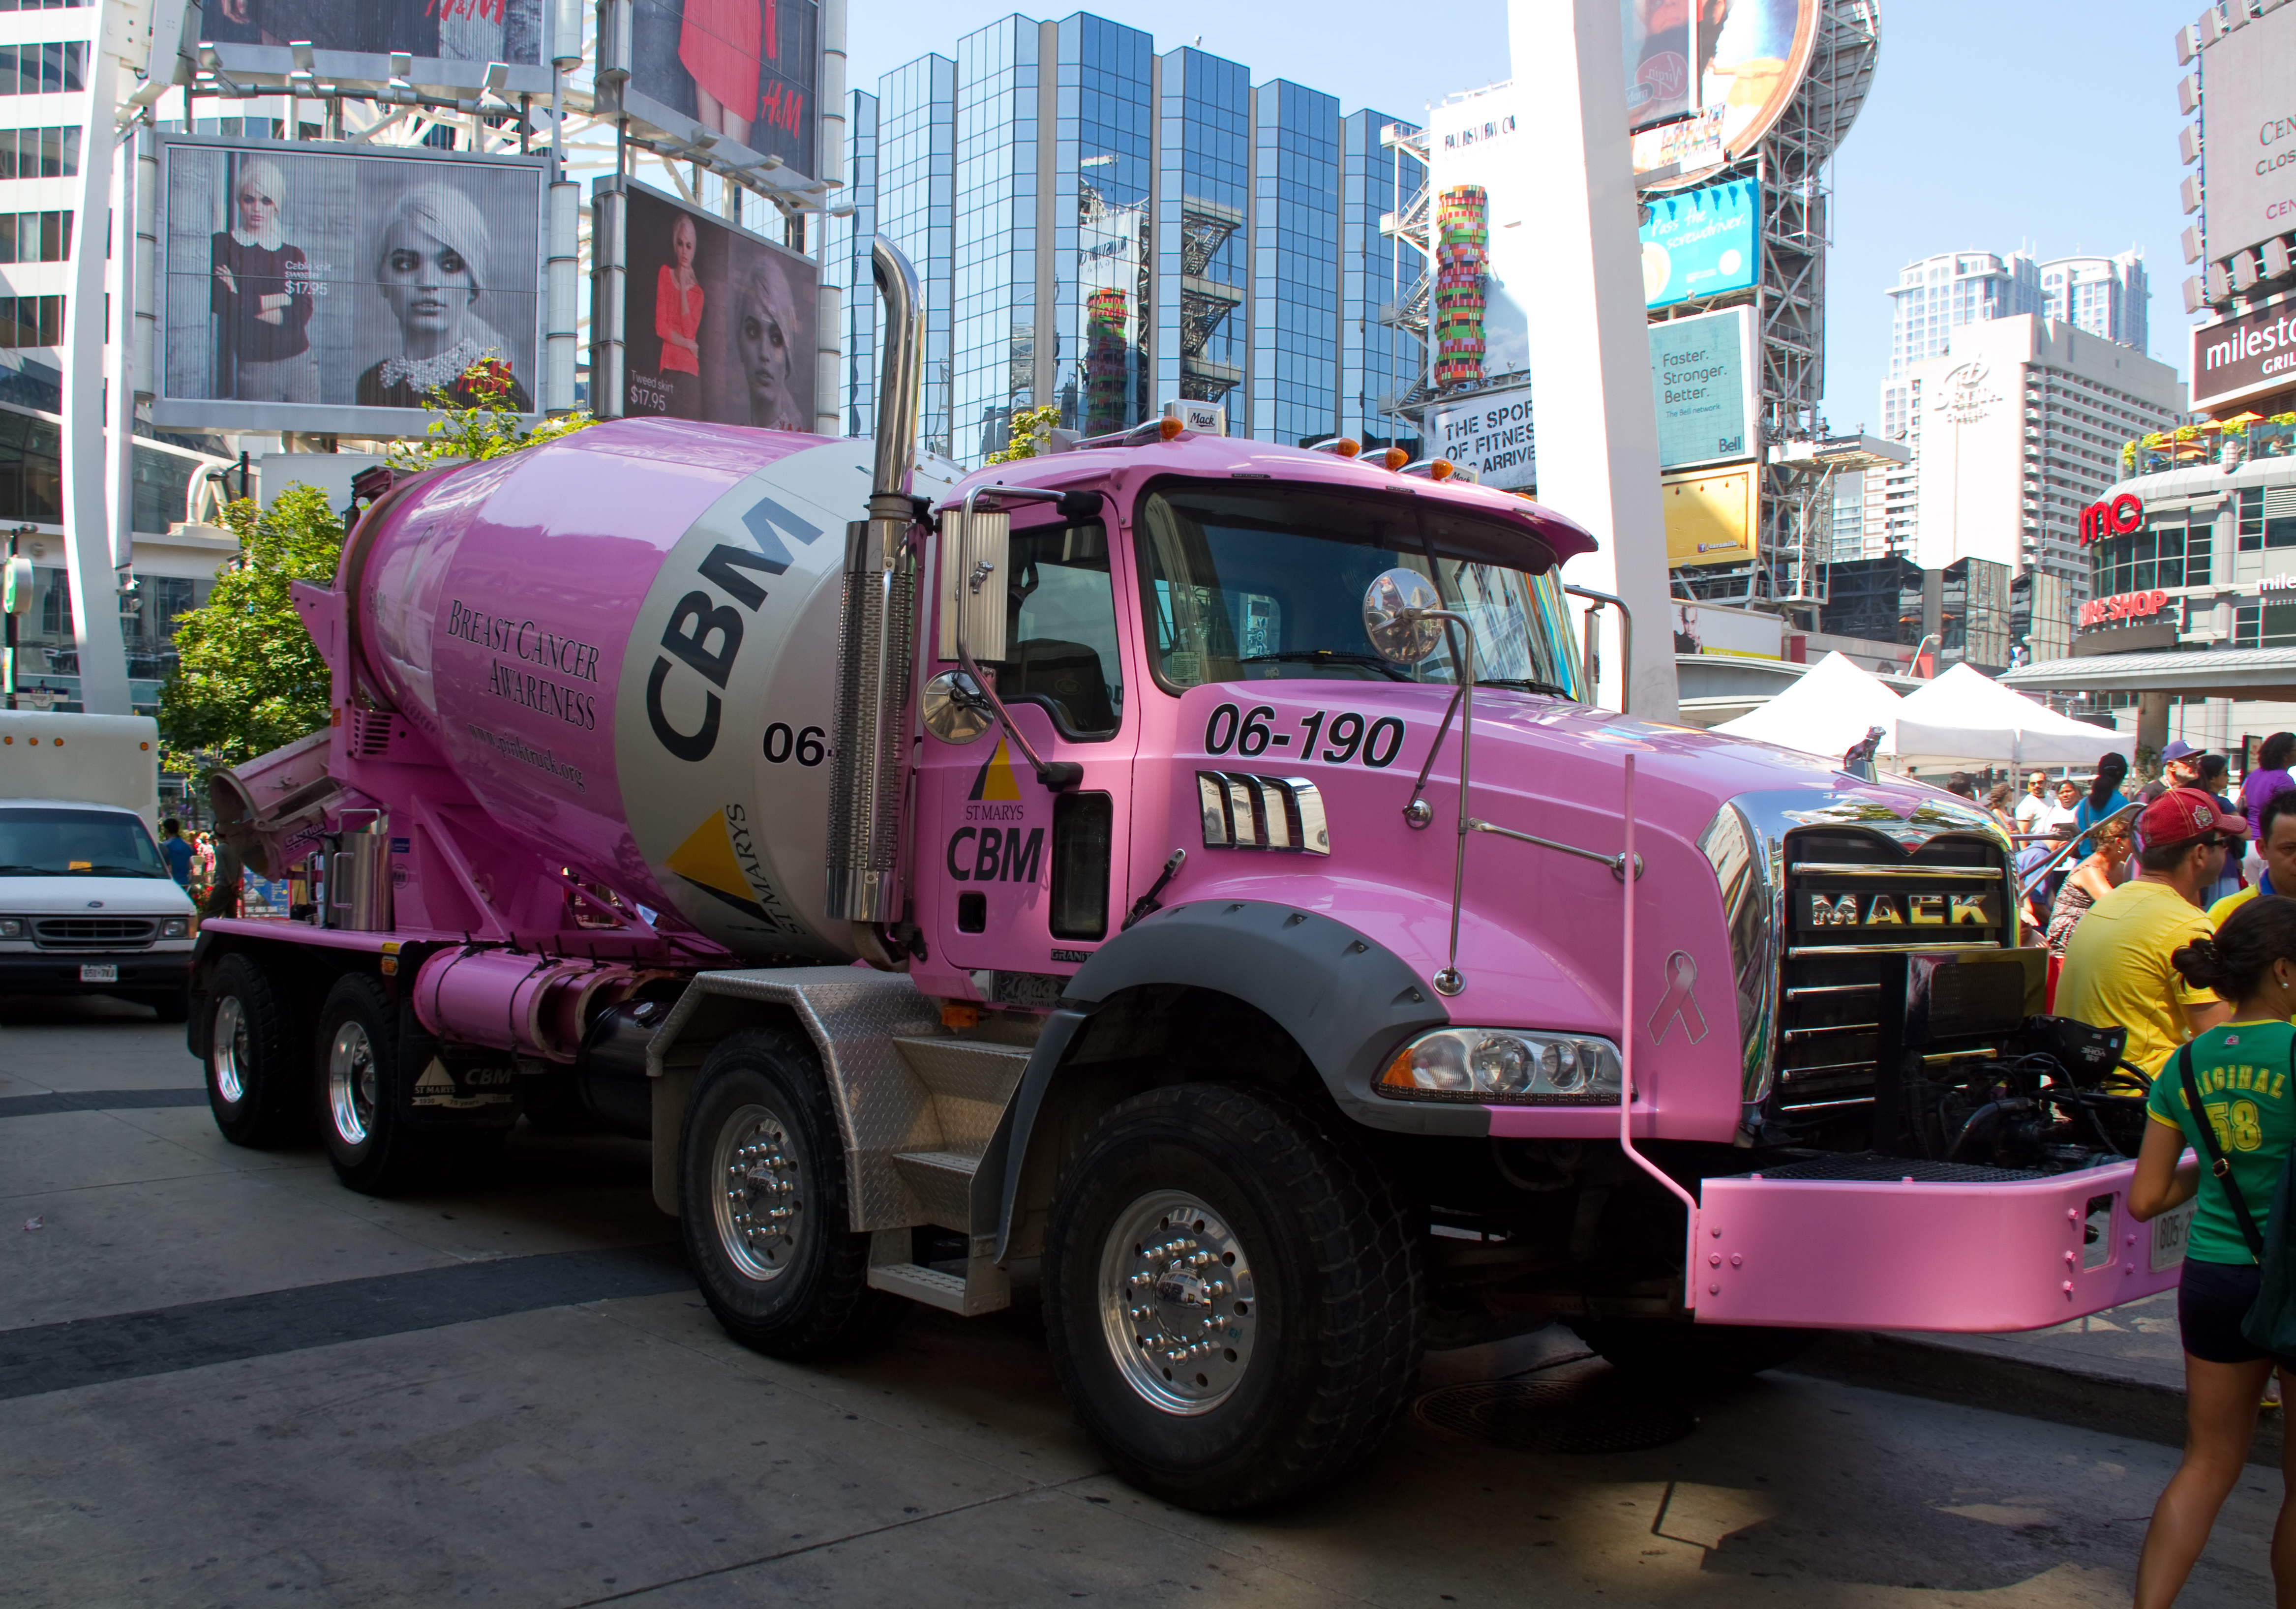 File:Pink Cement mixer truck in Canada.jpg